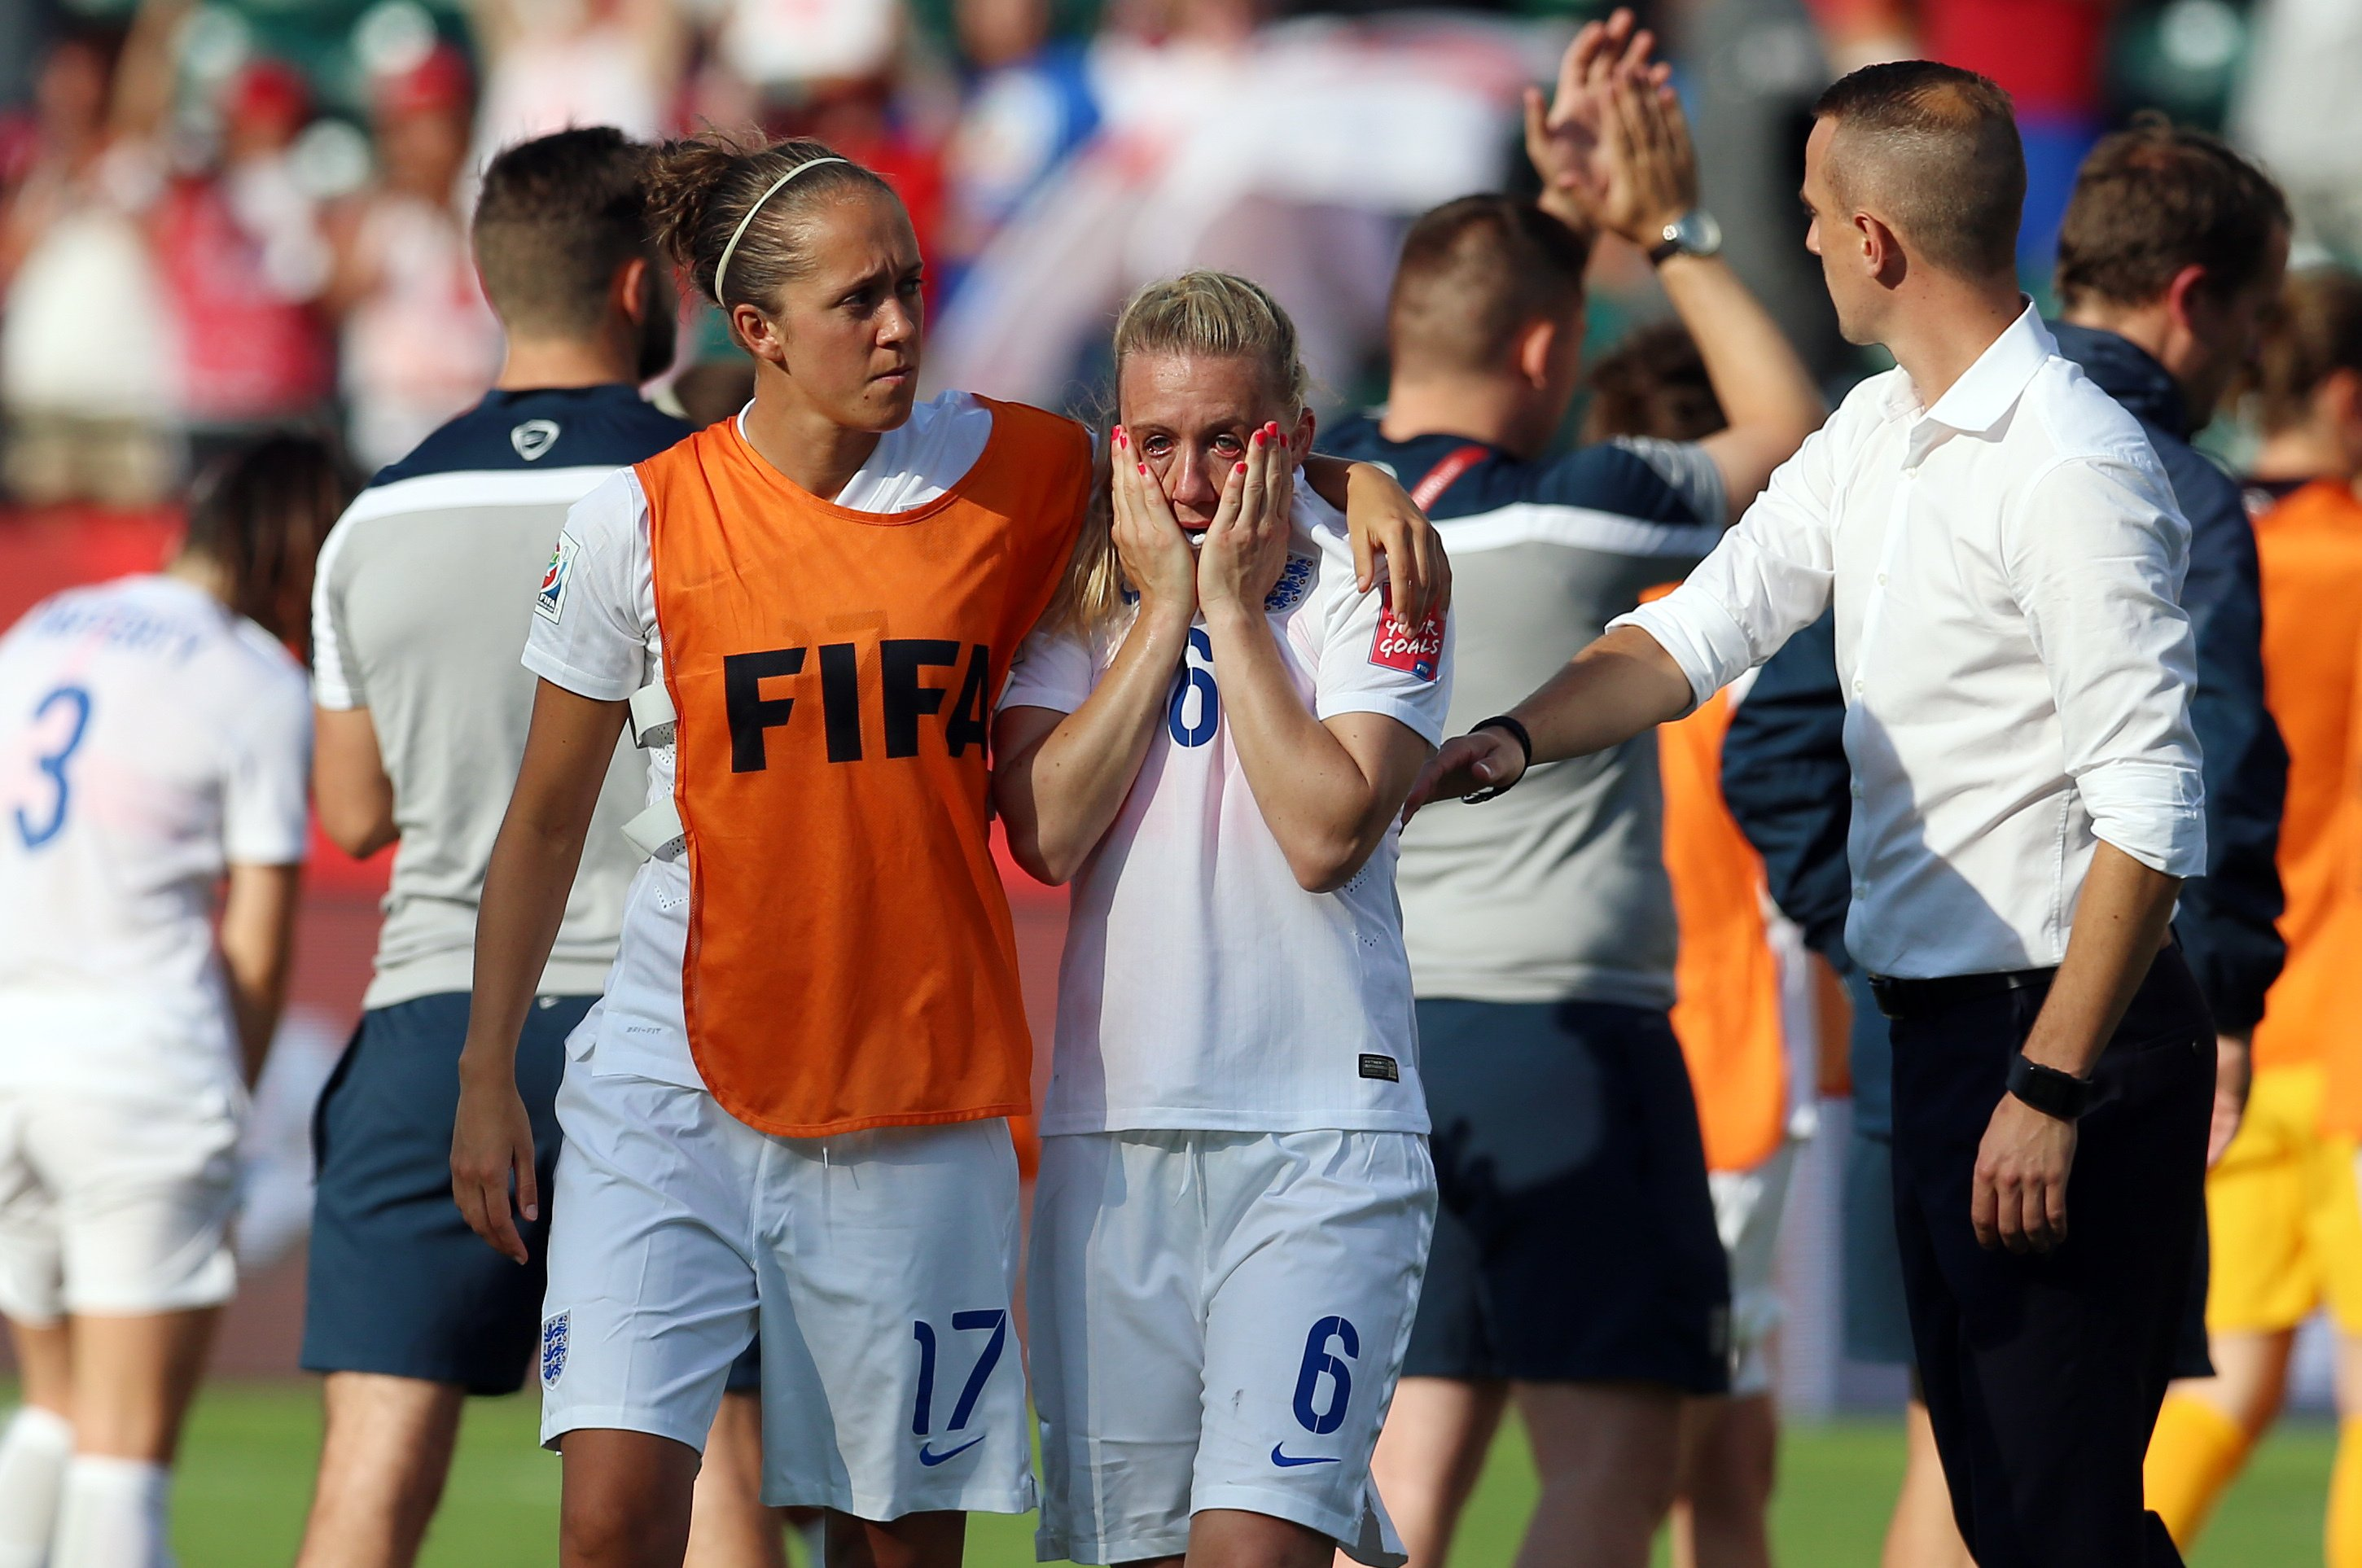 Biggest controversies from a decade of women's sport: Doping scandals,